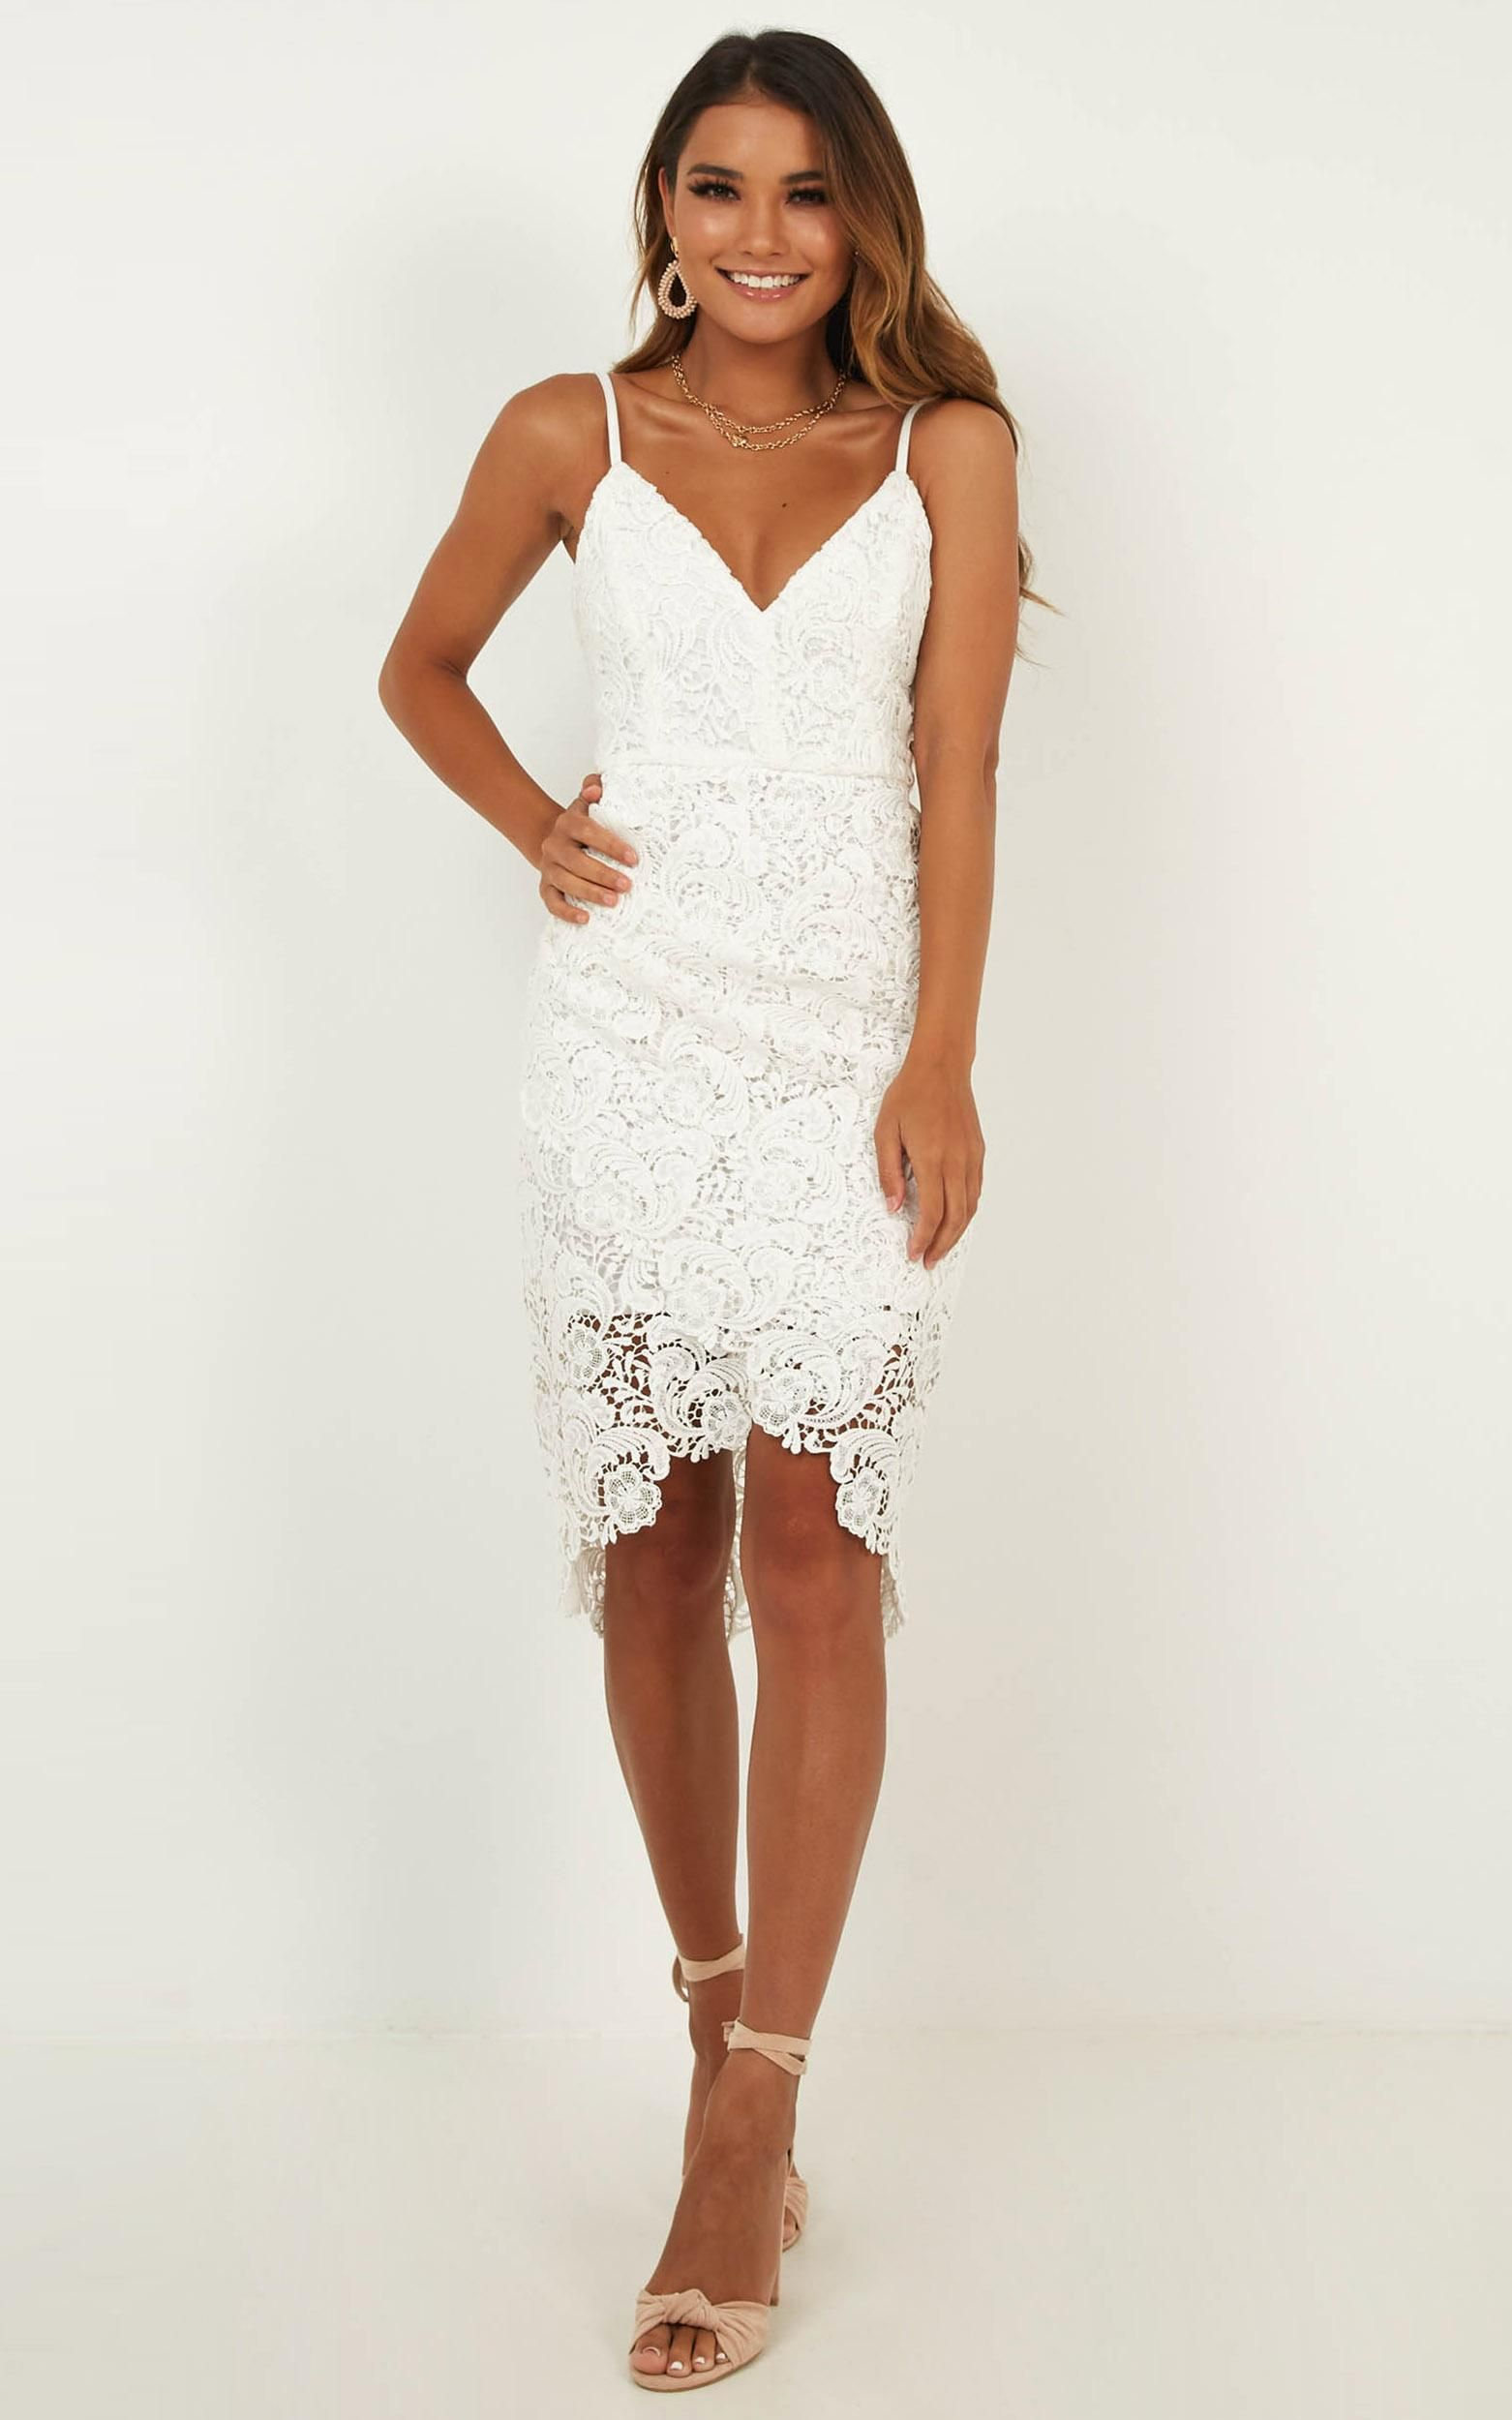 Typical Lover Dress In White Lace Showpo Lace White Dress Lover Dress Off White Lace Dress [ 2500 x 1562 Pixel ]